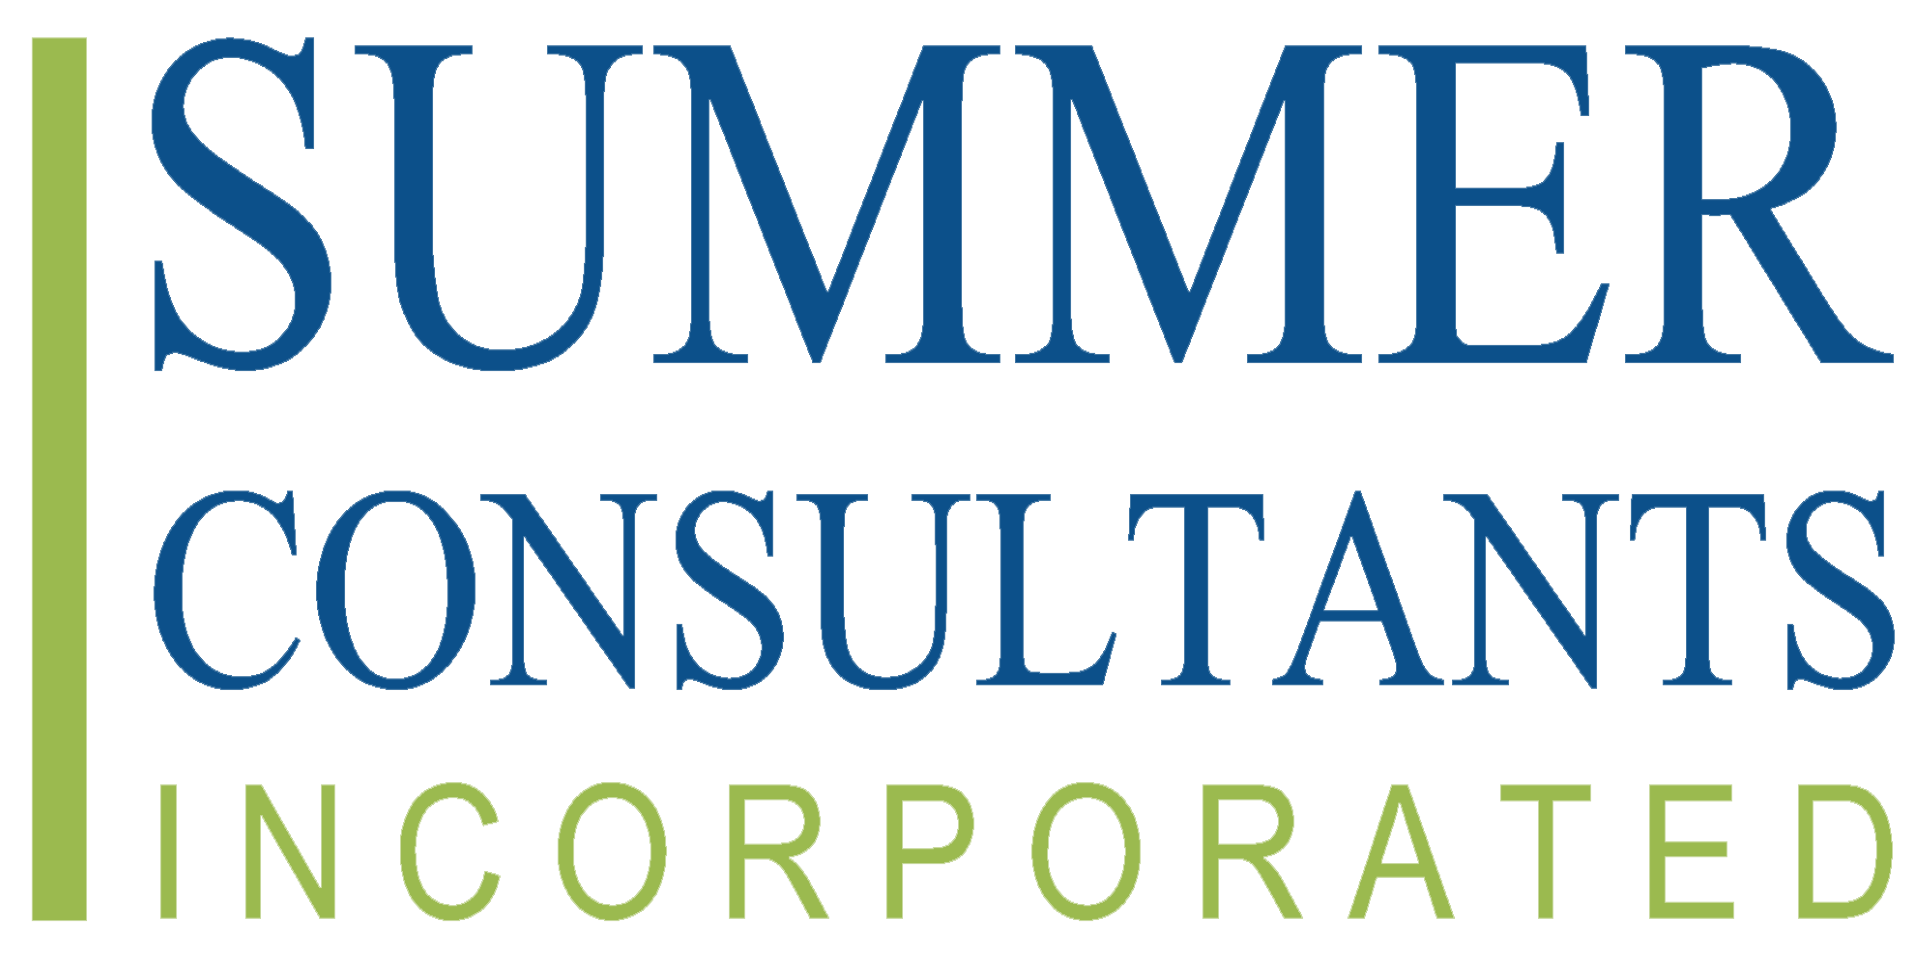 Summer-Consultant-LOGO-resized.png